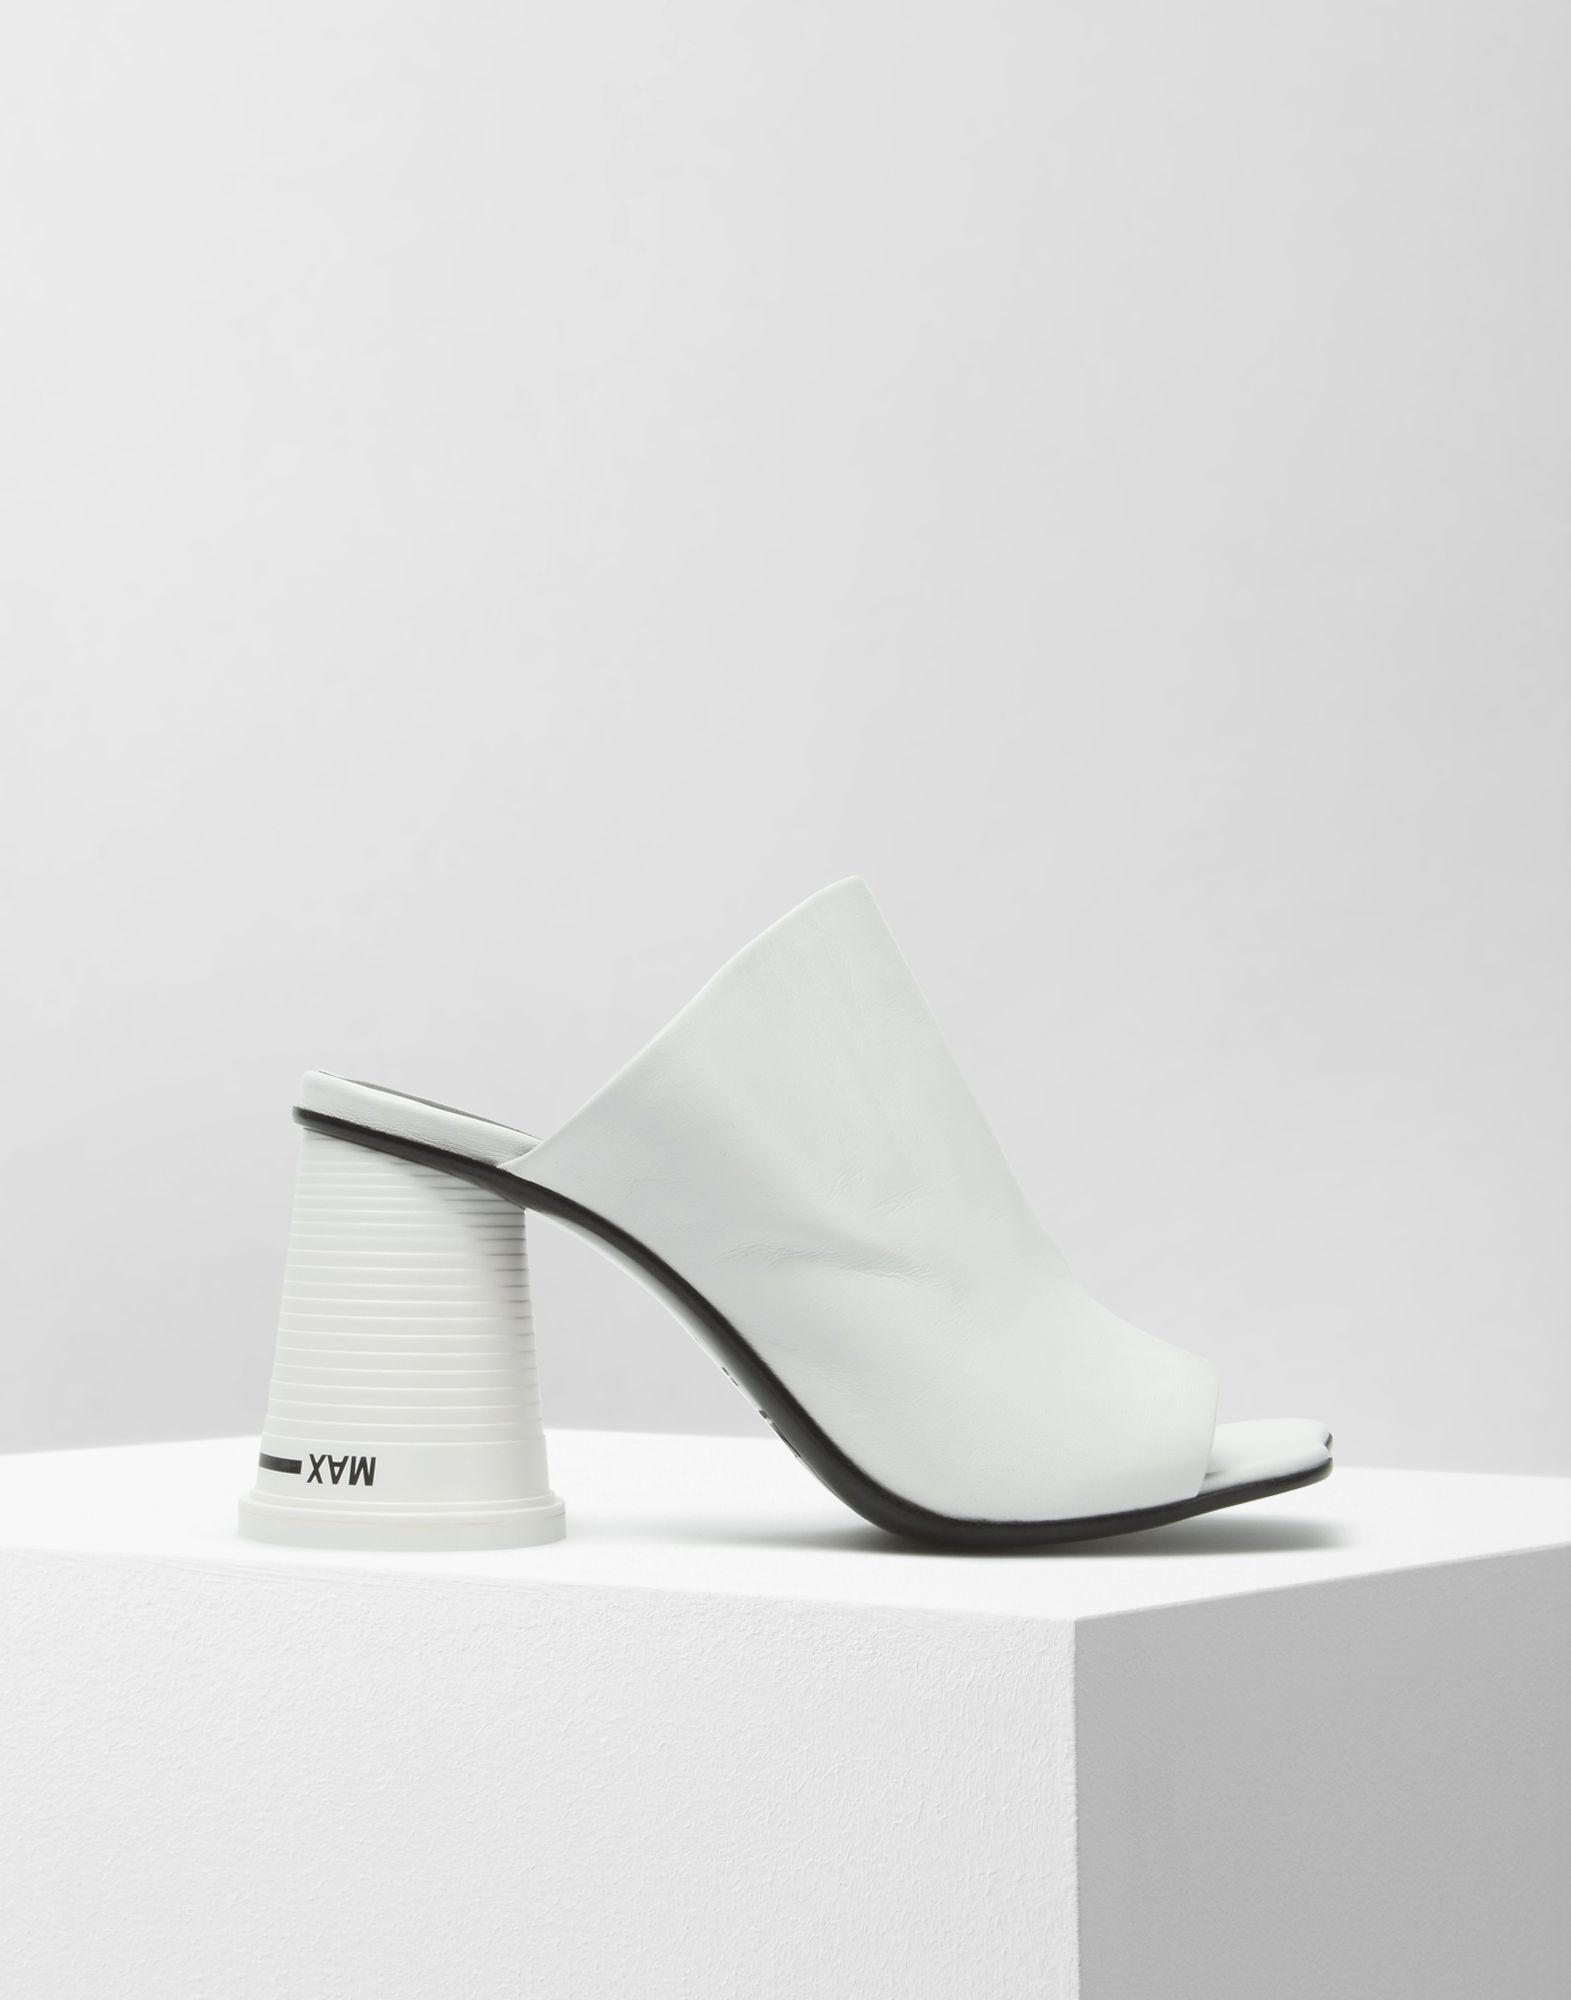 fddf2dc6b741 Mm6 By Maison Martin Margiela Cup-heel Mules in White - Lyst